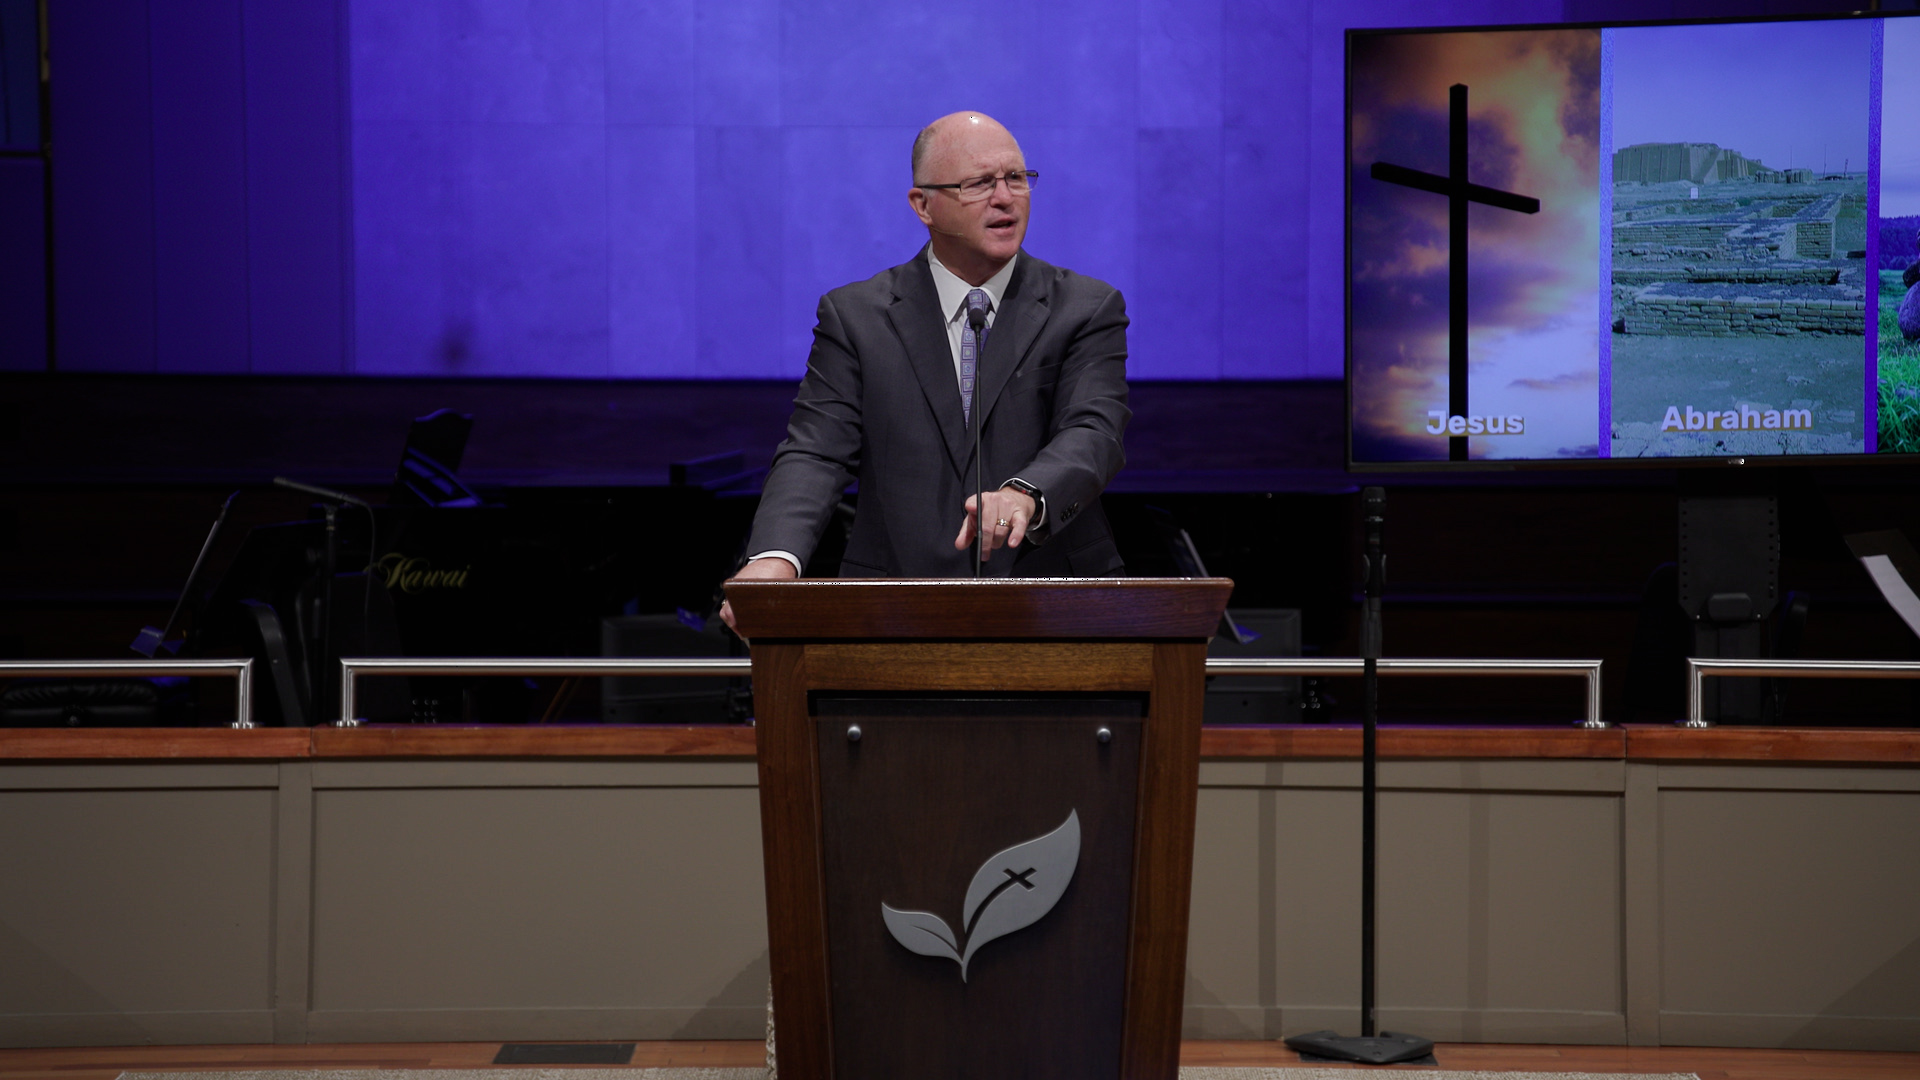 Pastor Paul Chappell: Overcoming the Unknown